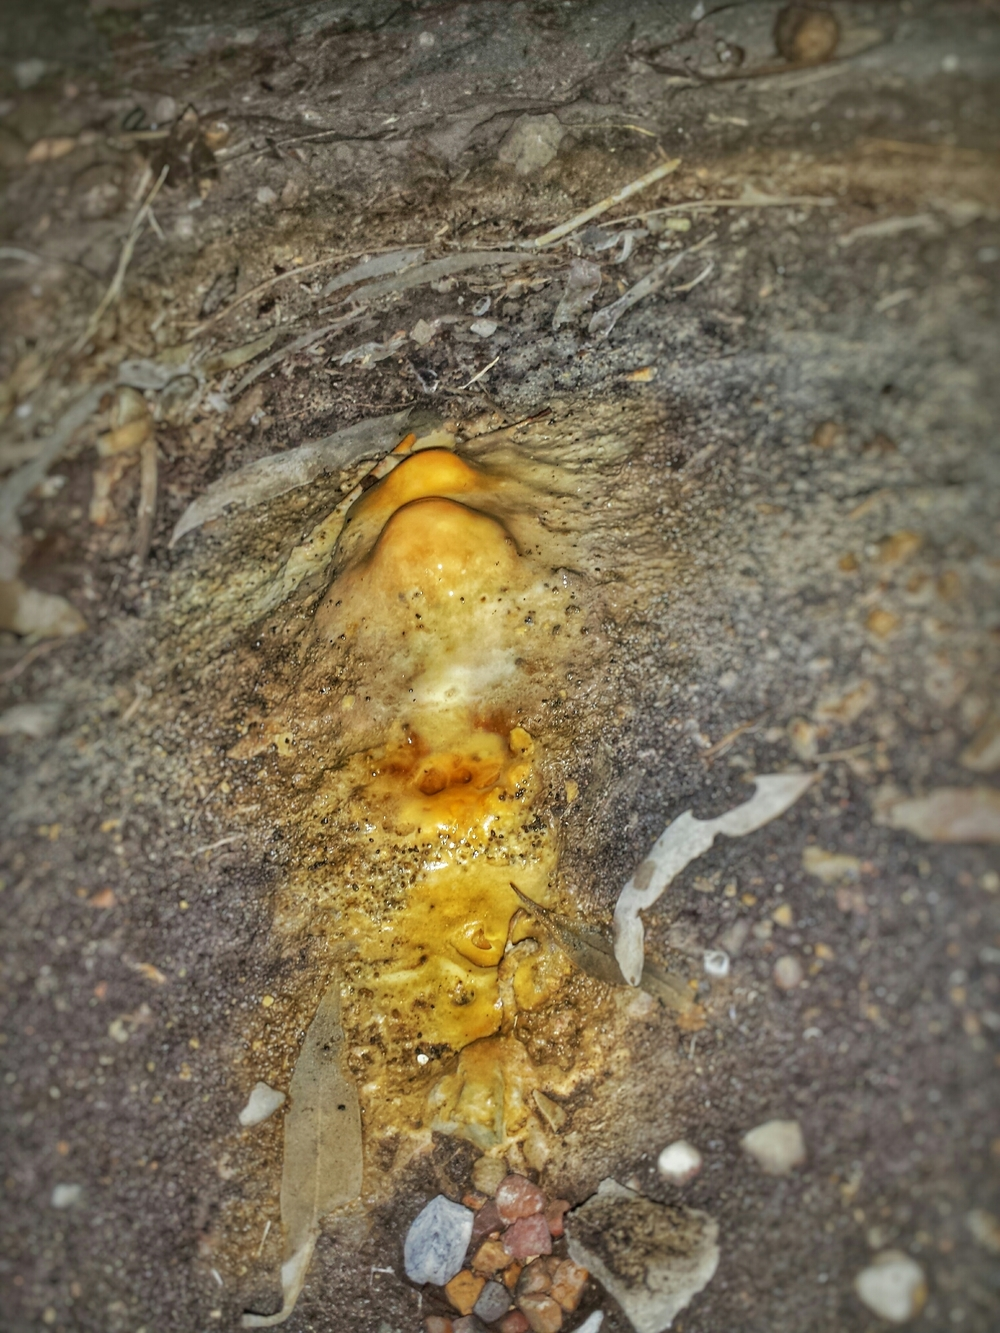 The Stalagmites were a sure sign of the extent of this leak. Many thousands of litres of water would have been dripped to form this huge calcified deposit. It was so extensive that we couldn't budge it!